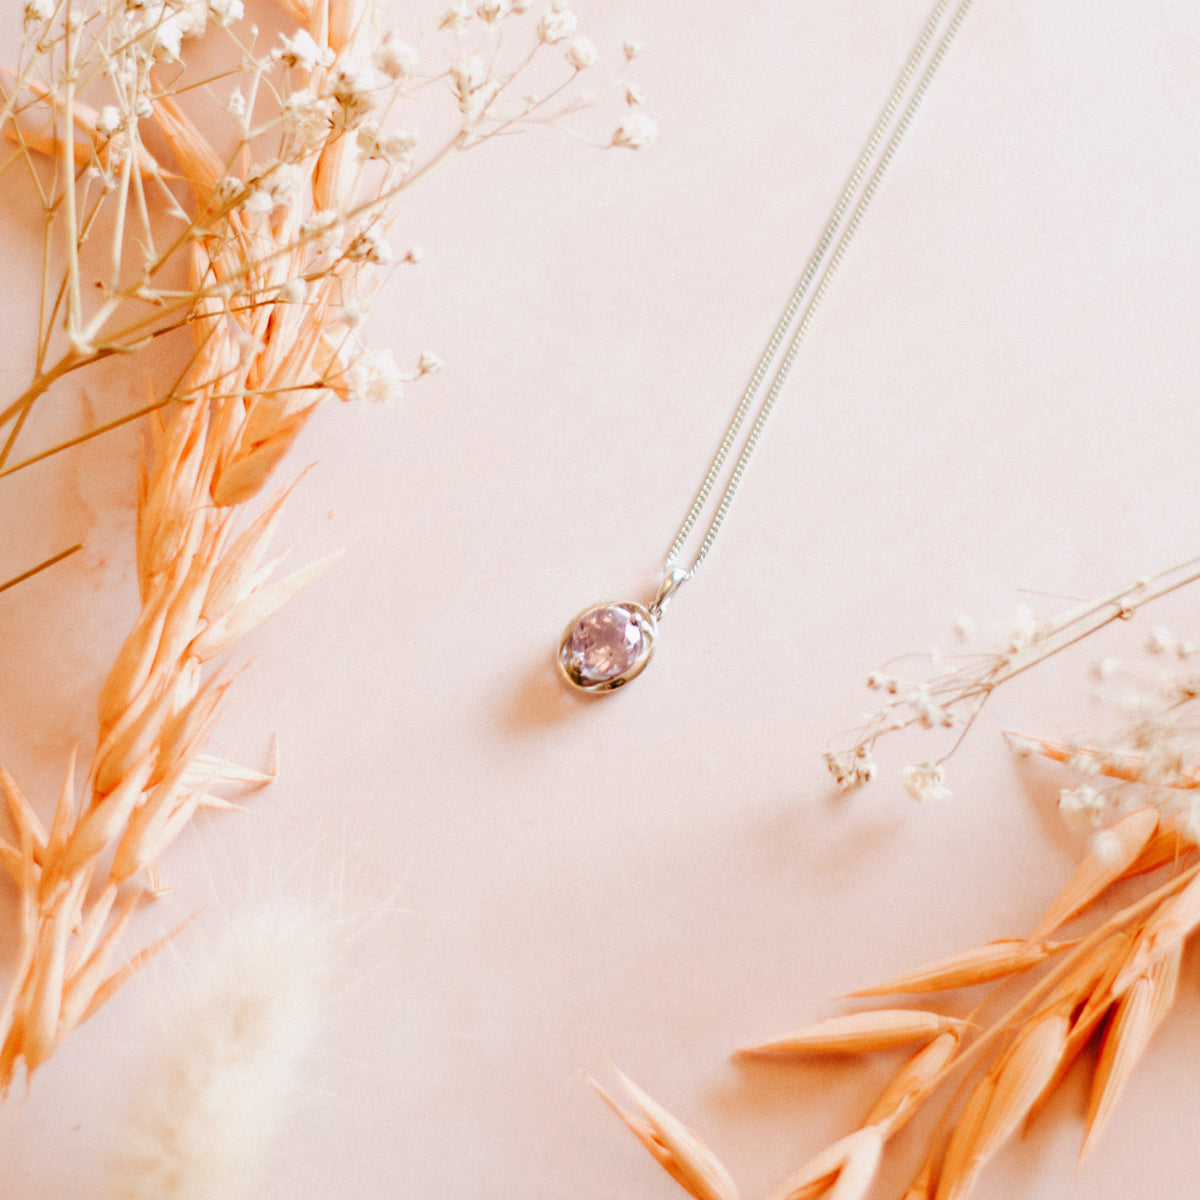 Picture of the silver oval amethyst pendant necklace on a pink background surrounded by dried flowers.